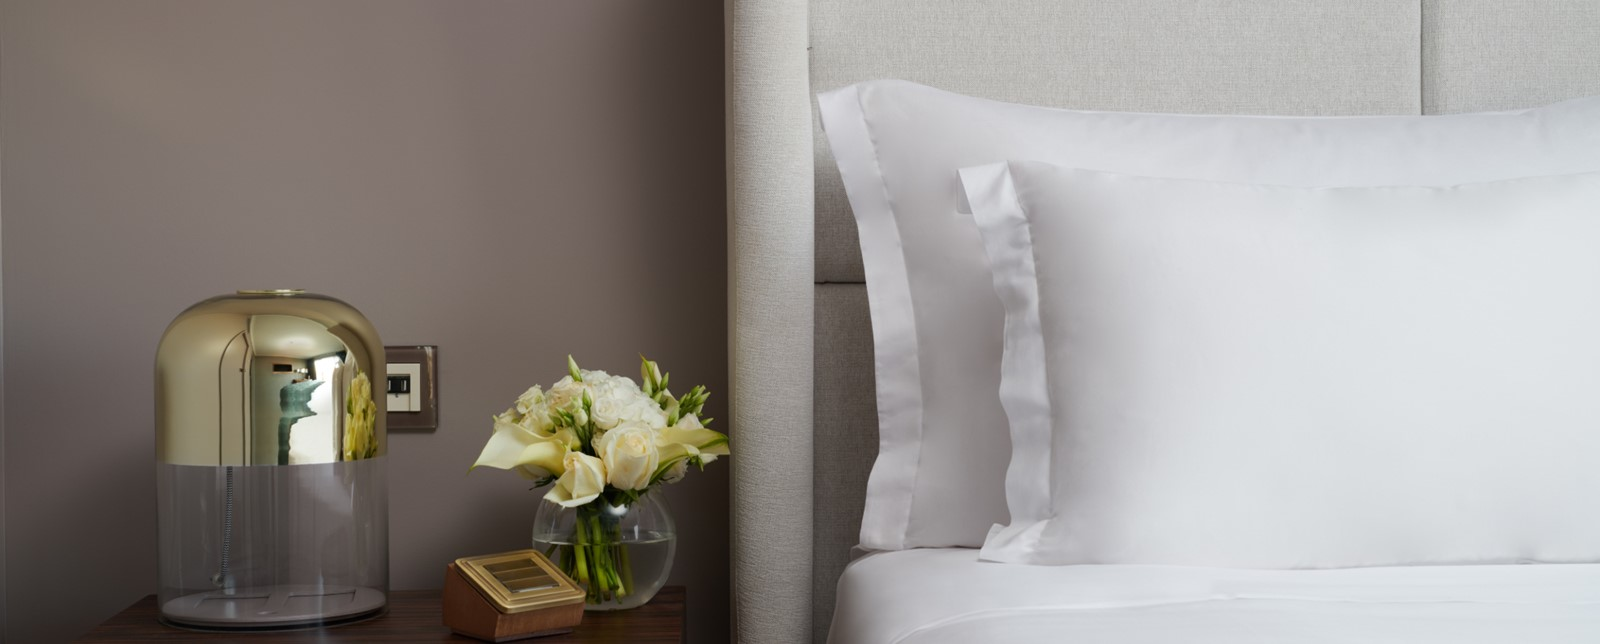 Corinthia Lisbon Executive Suite detail